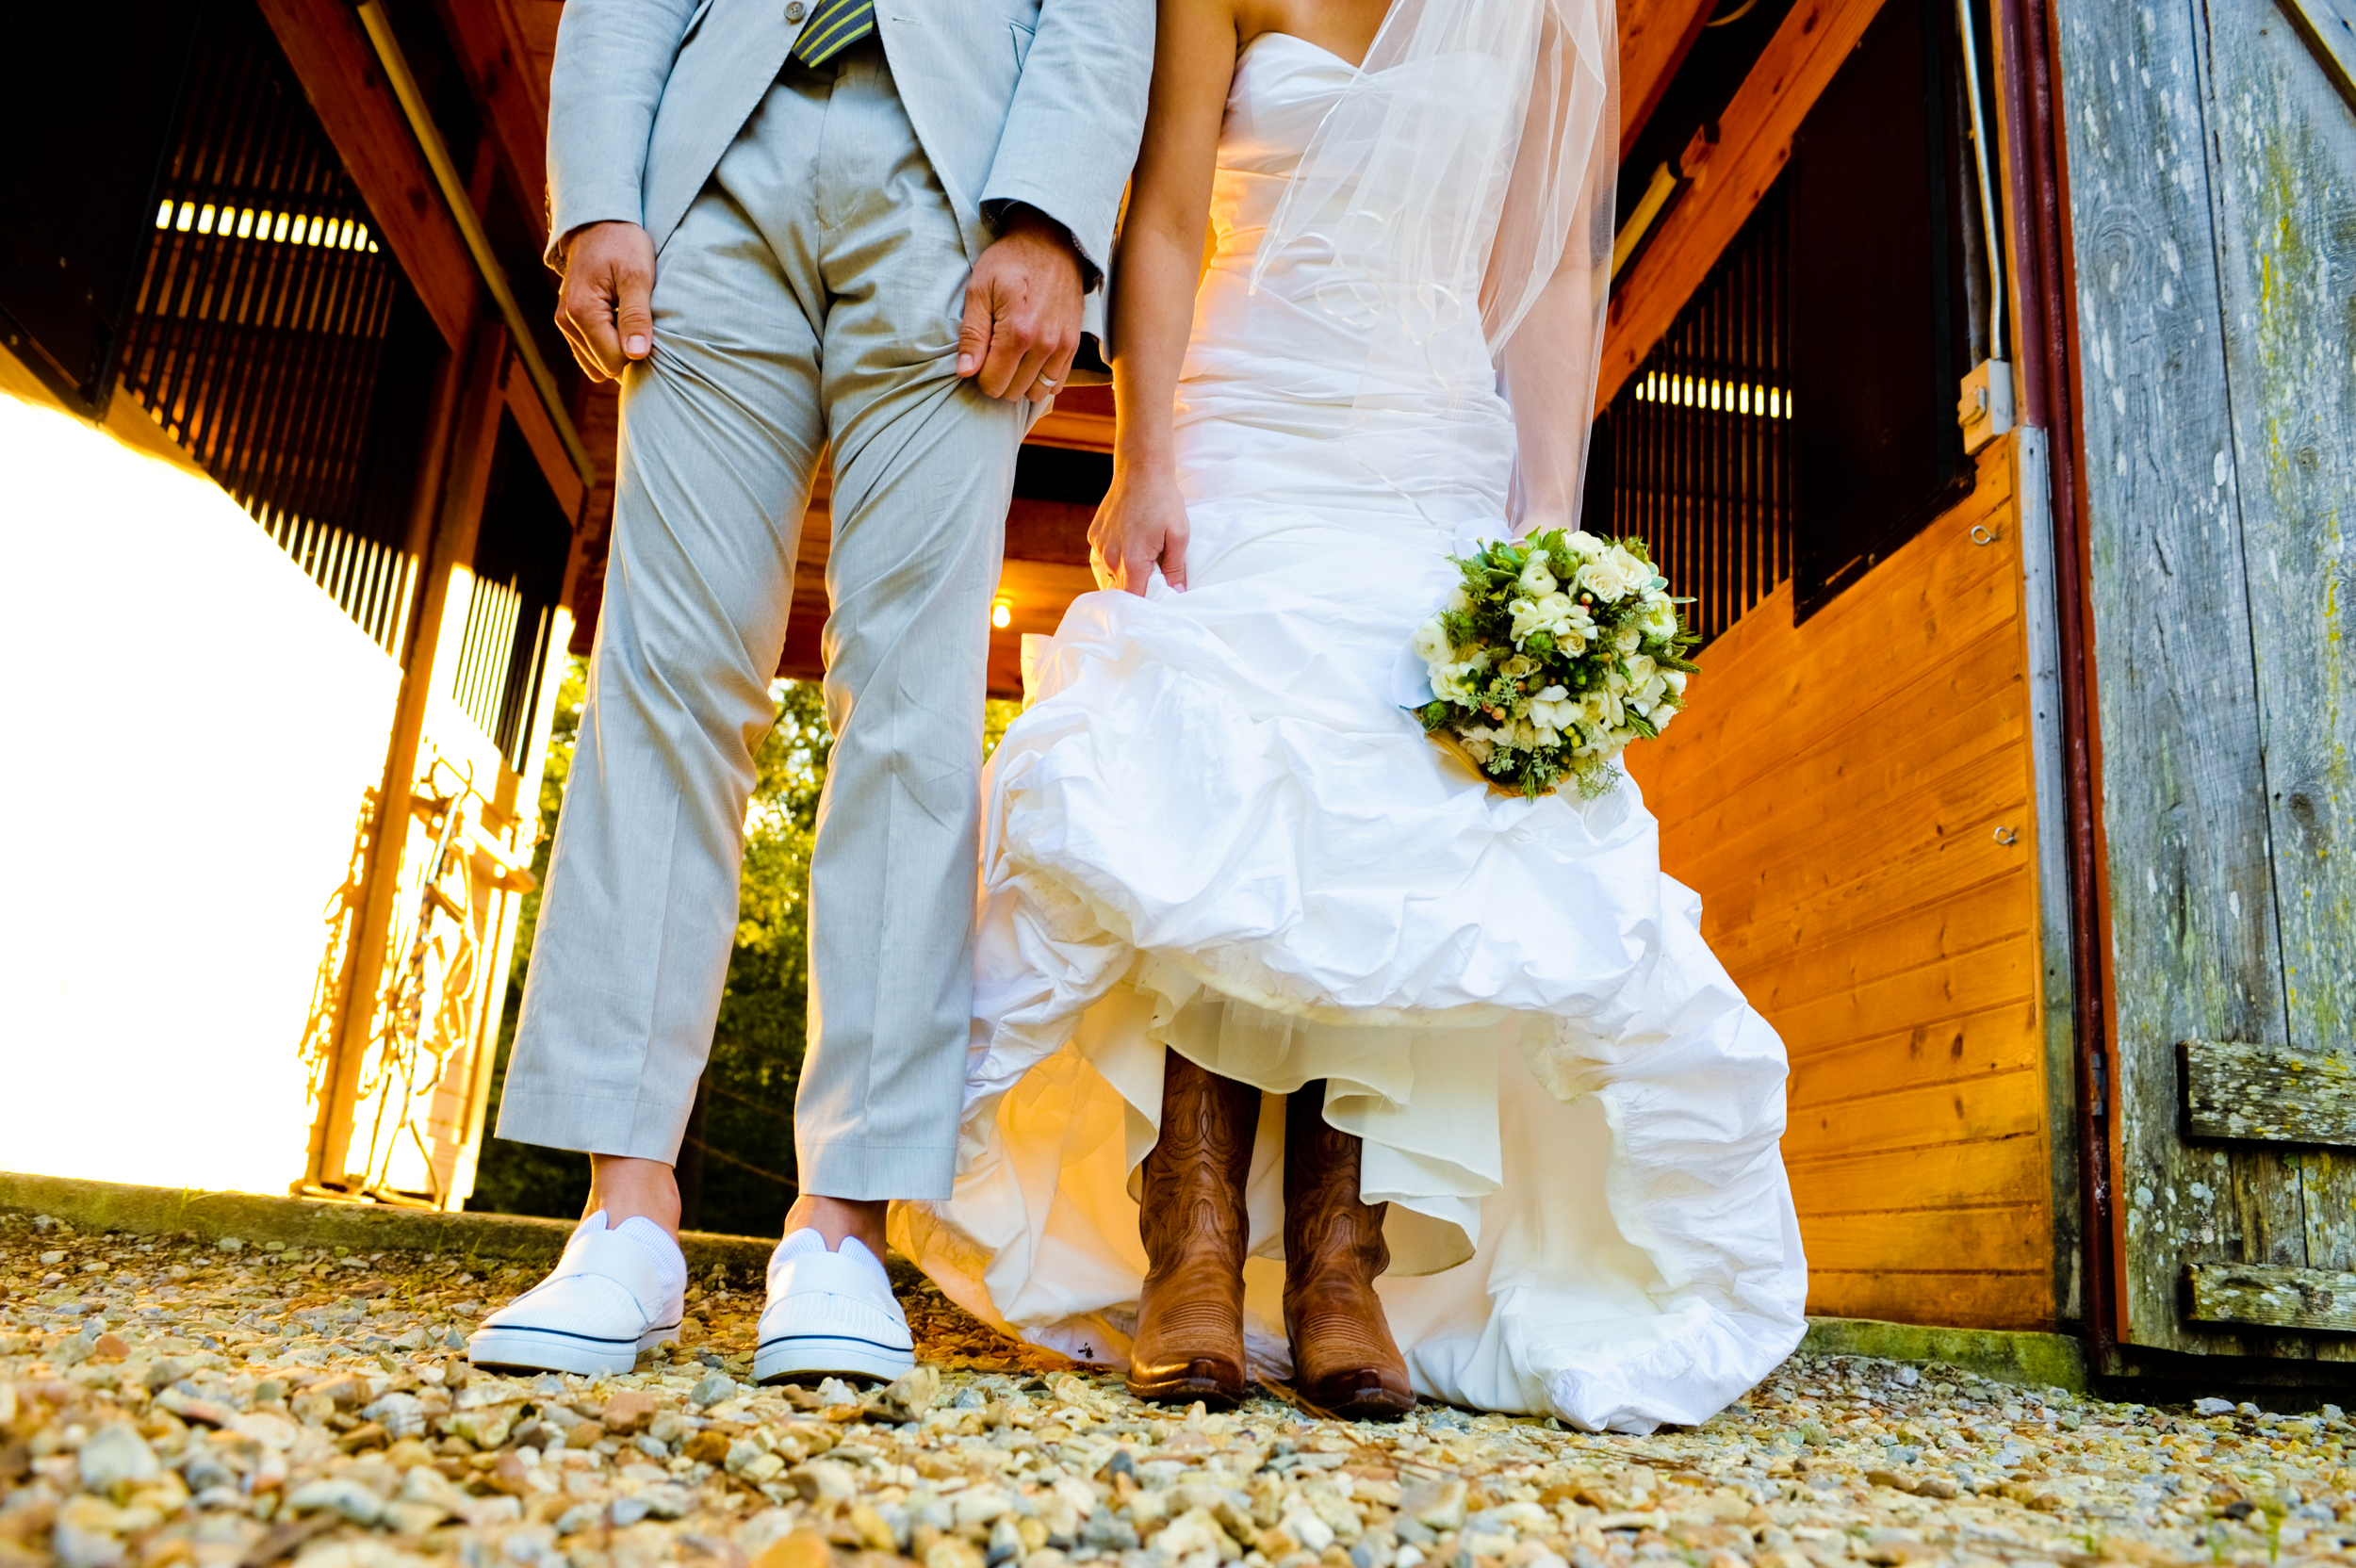 The Bride and Groom's Legs